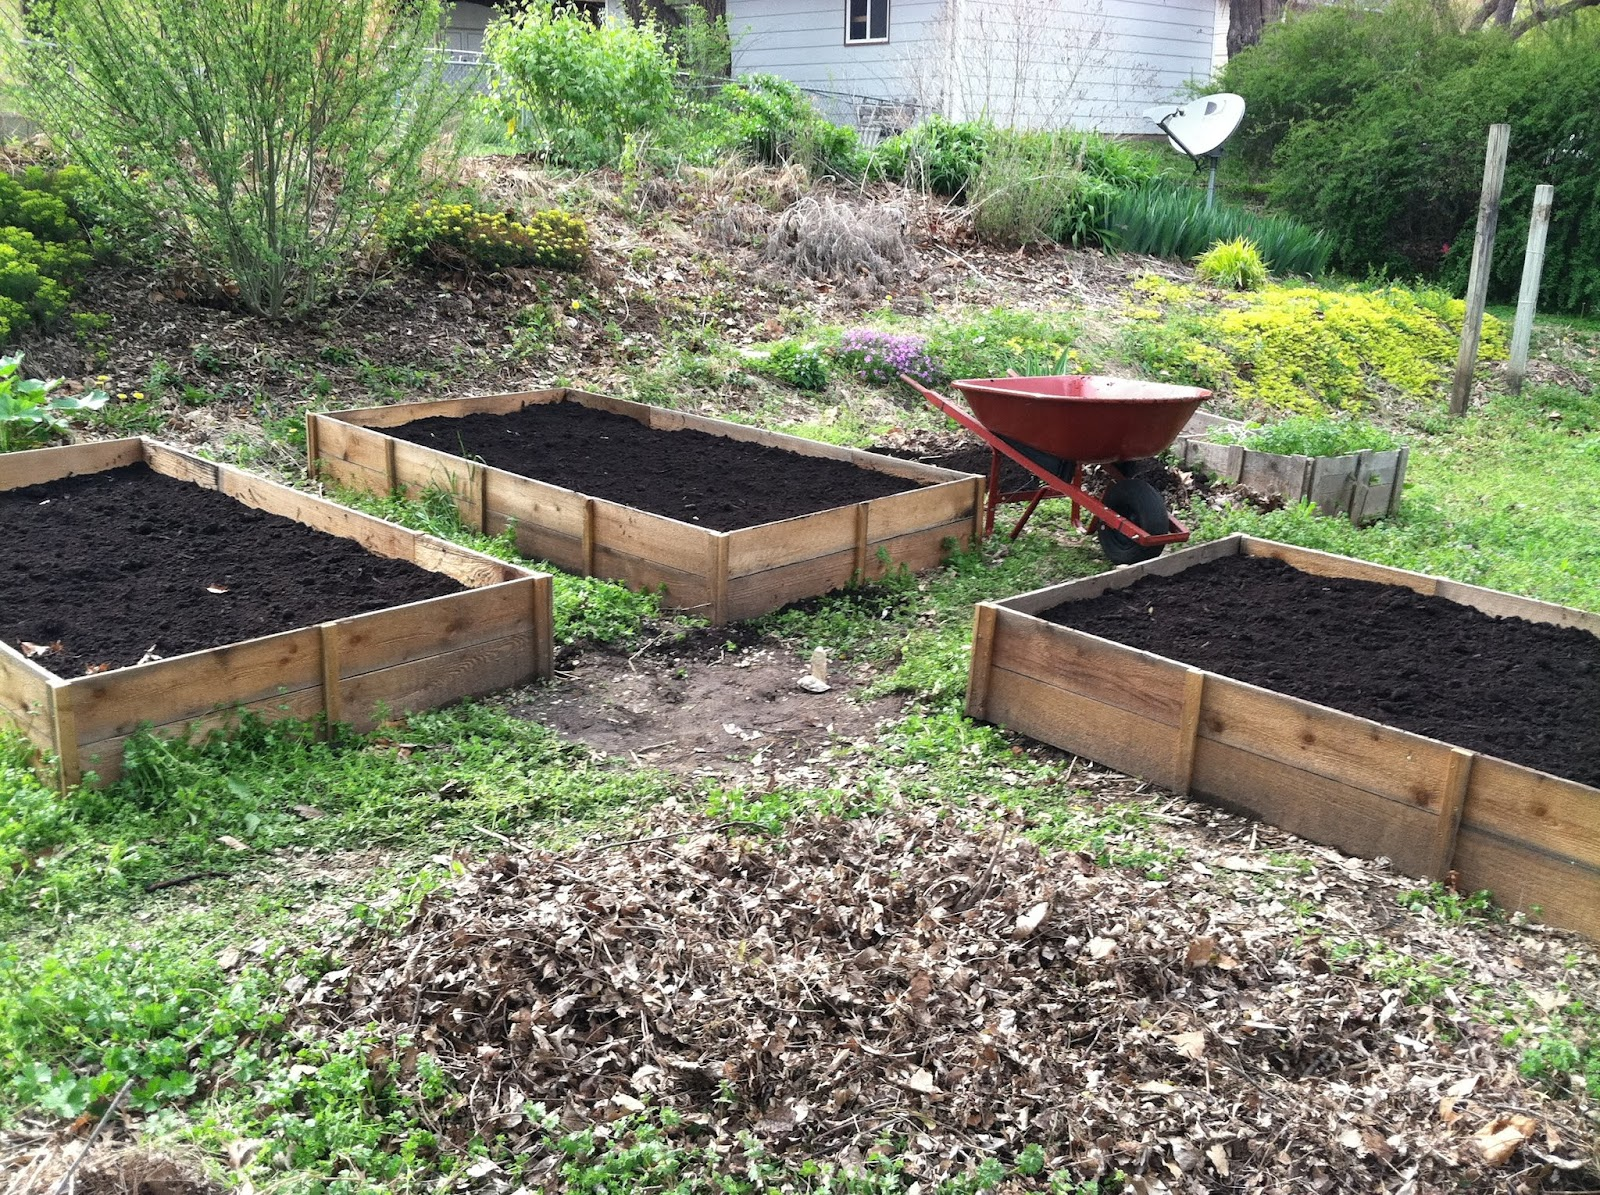 German Jello Salad Cedar Raised Beds I 39 M Finally Posting About Those Uber Cheap Ones I Made